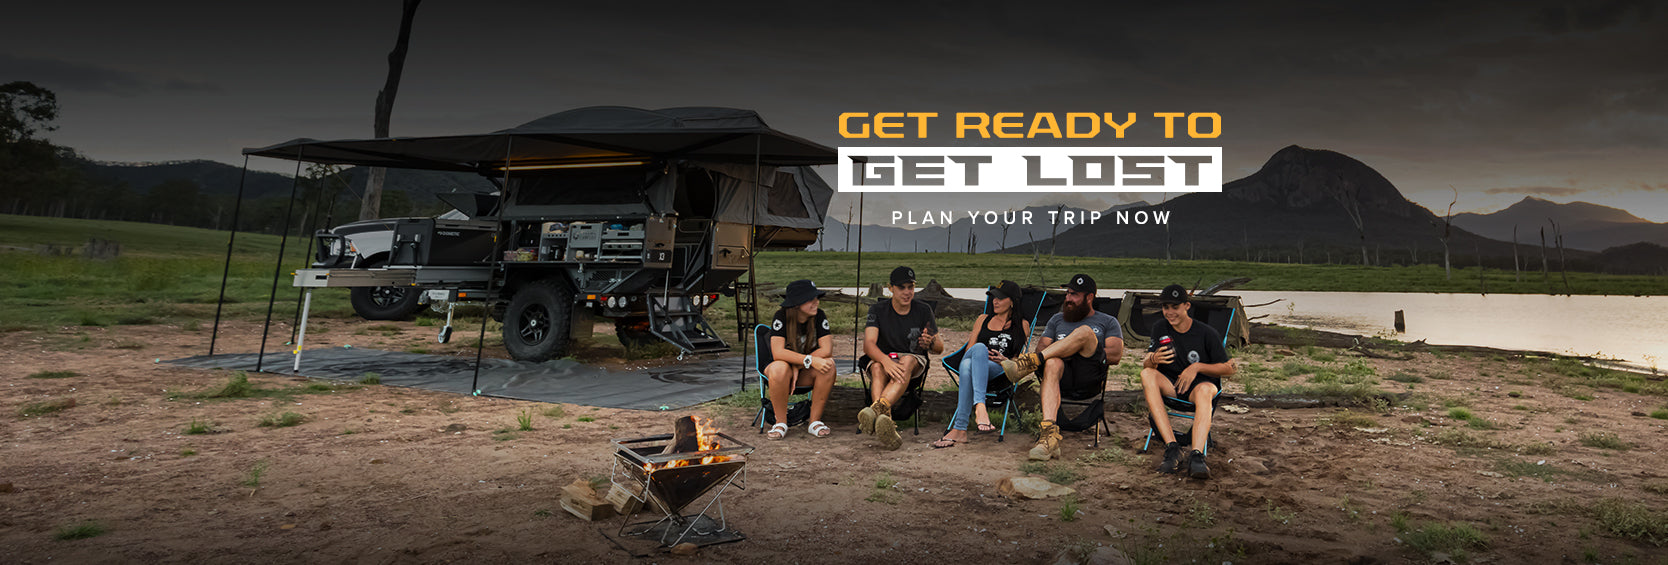 Patriot Campers - Get Ready To Get Lost - Explorationoutfitters.com